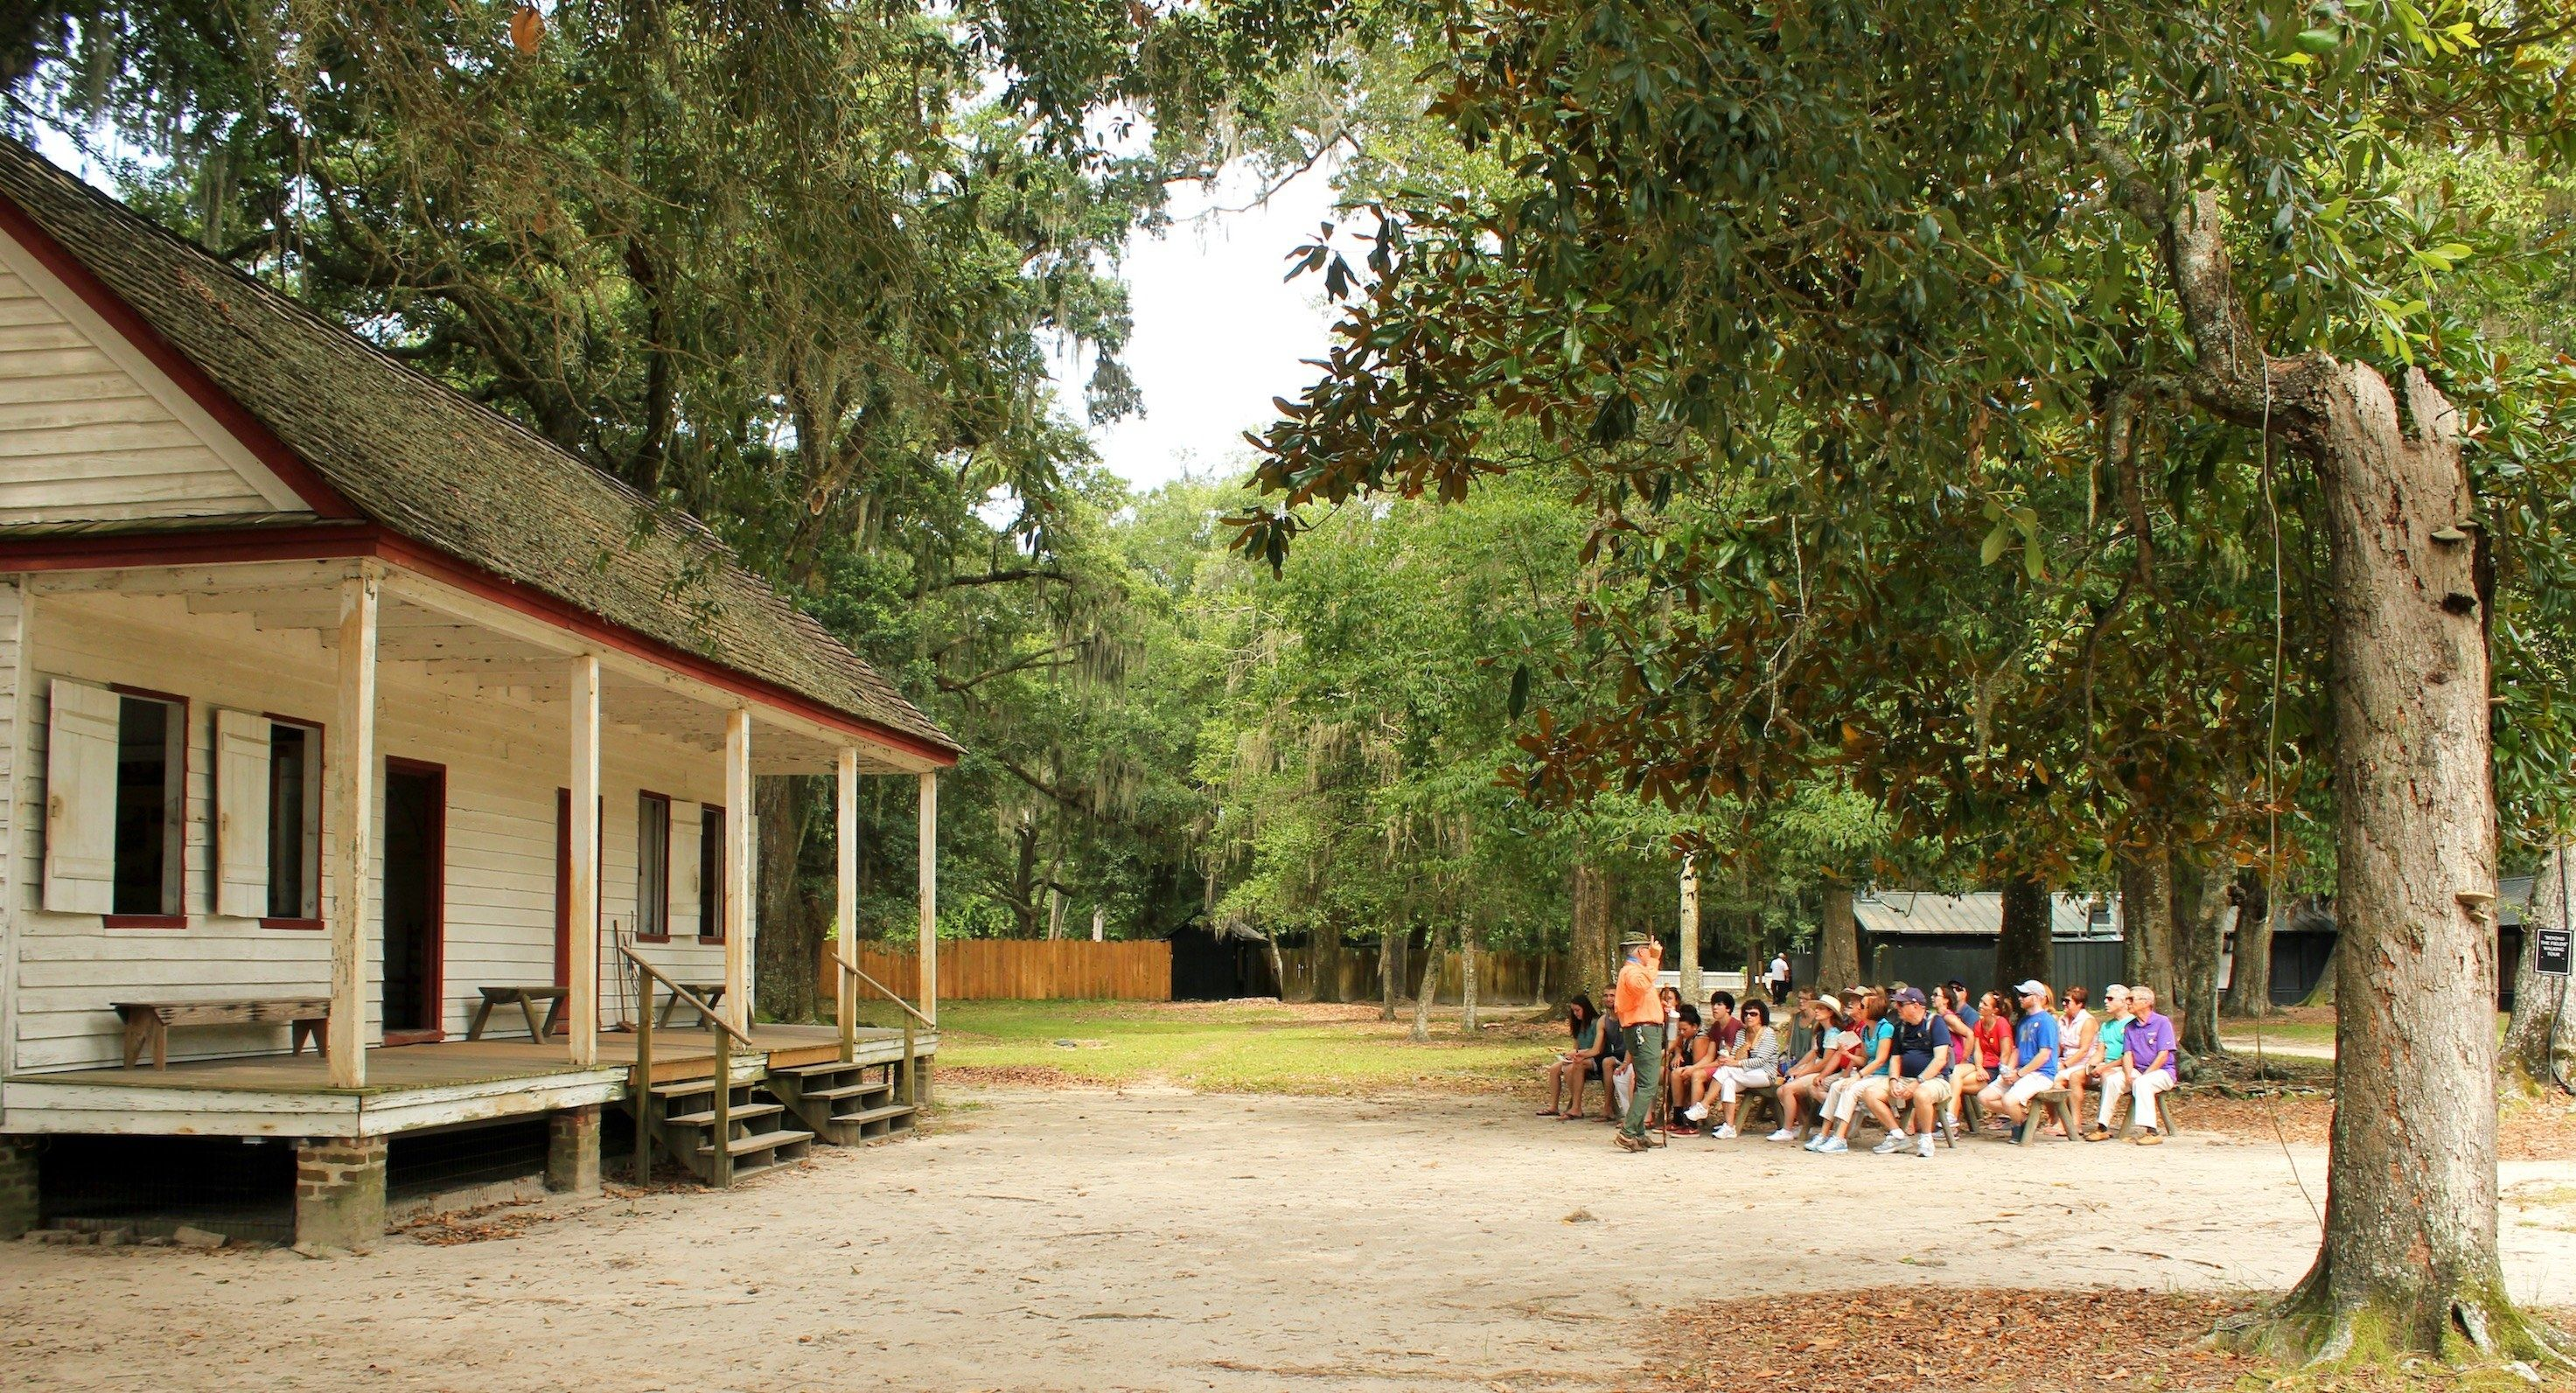 The tourism and wedding businesses at southern plantations clash with their efforts to present a more comprehensive history of how these sites perpetuated the horrors of American slavery.